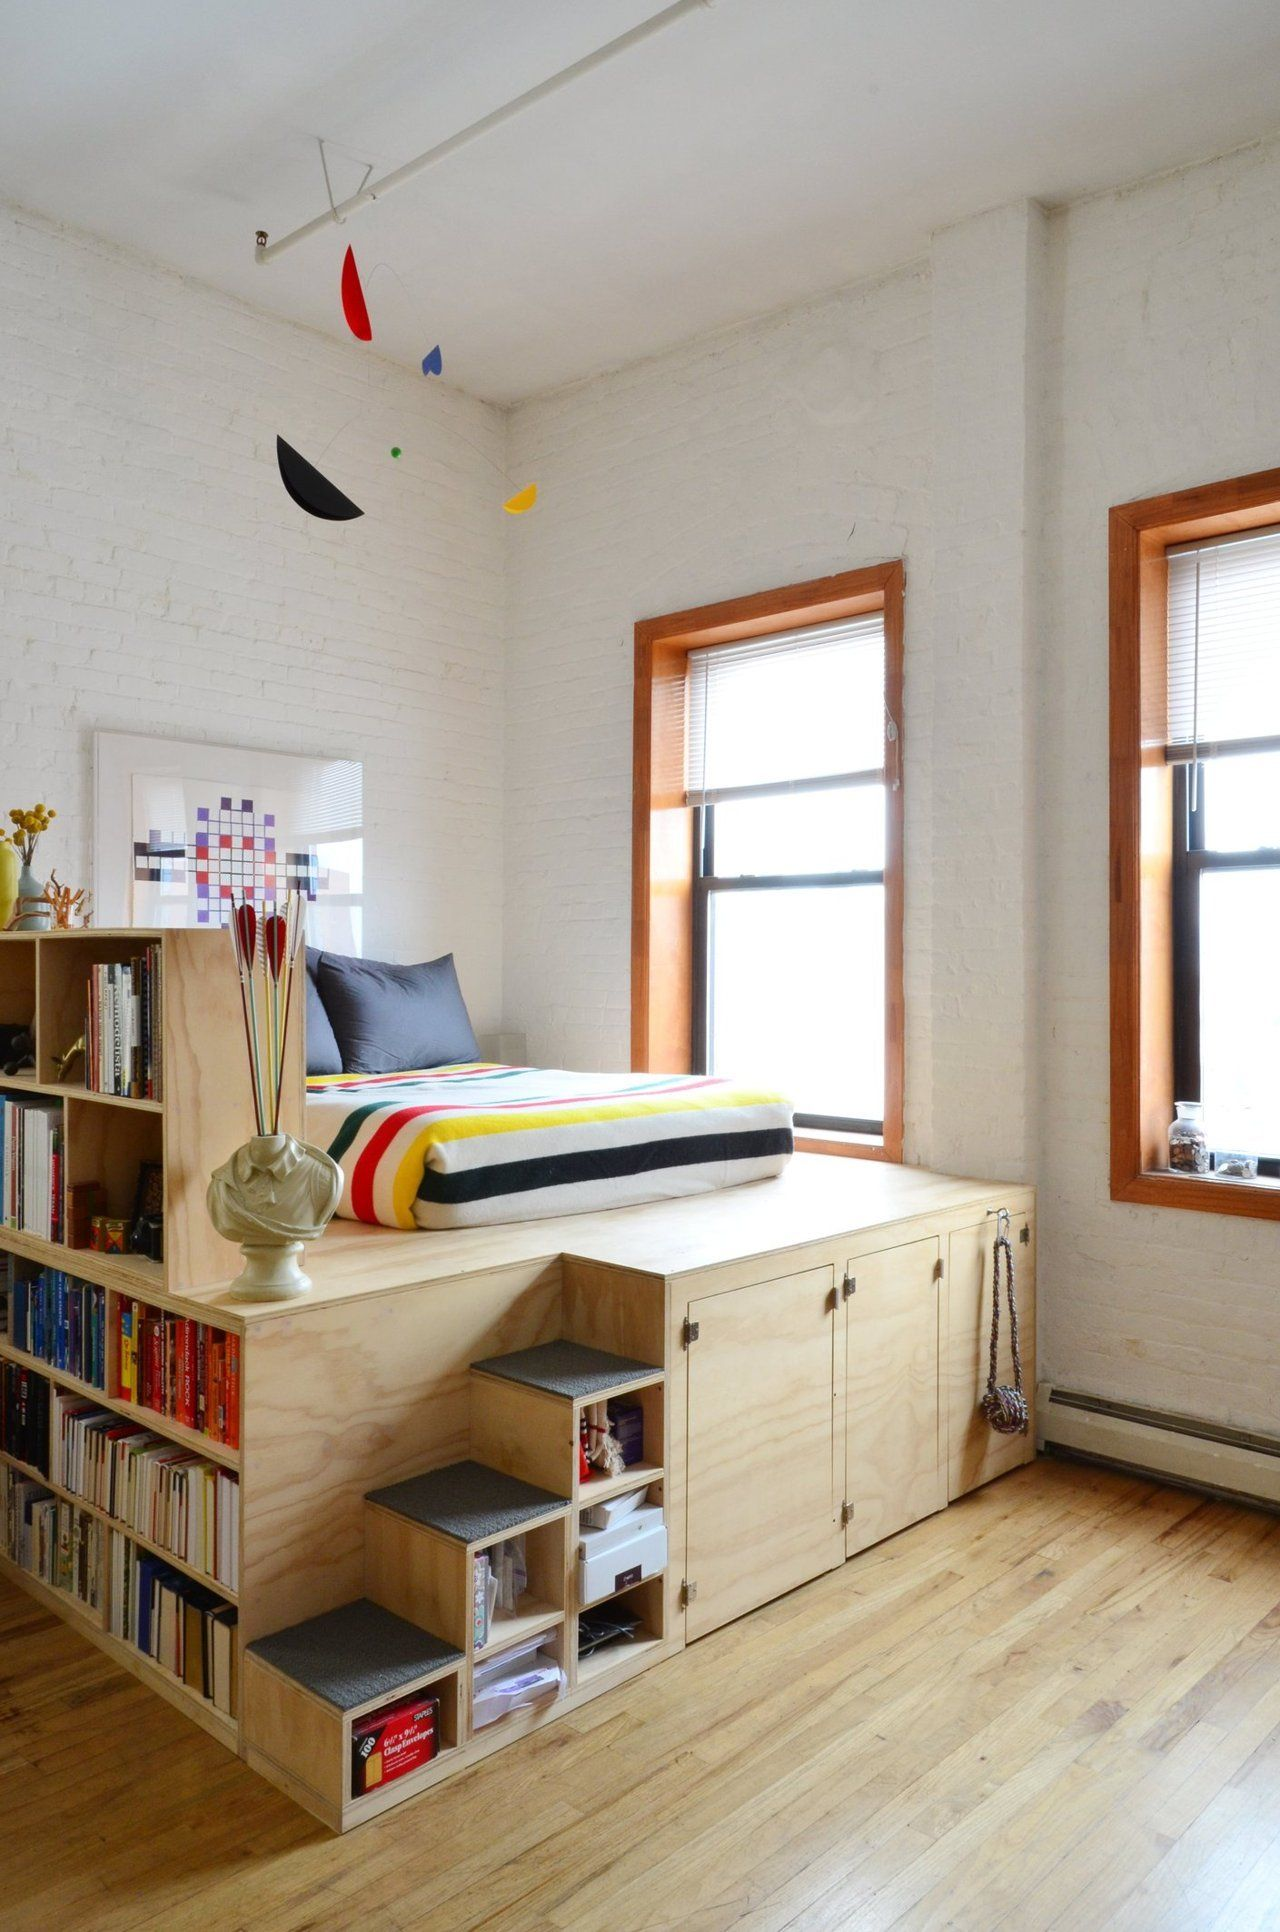 diy space saving bed frame design free plans instructions  bed  - insane platform bed with storage for inevitable tiny apartment living danny joni's brooklyn loft